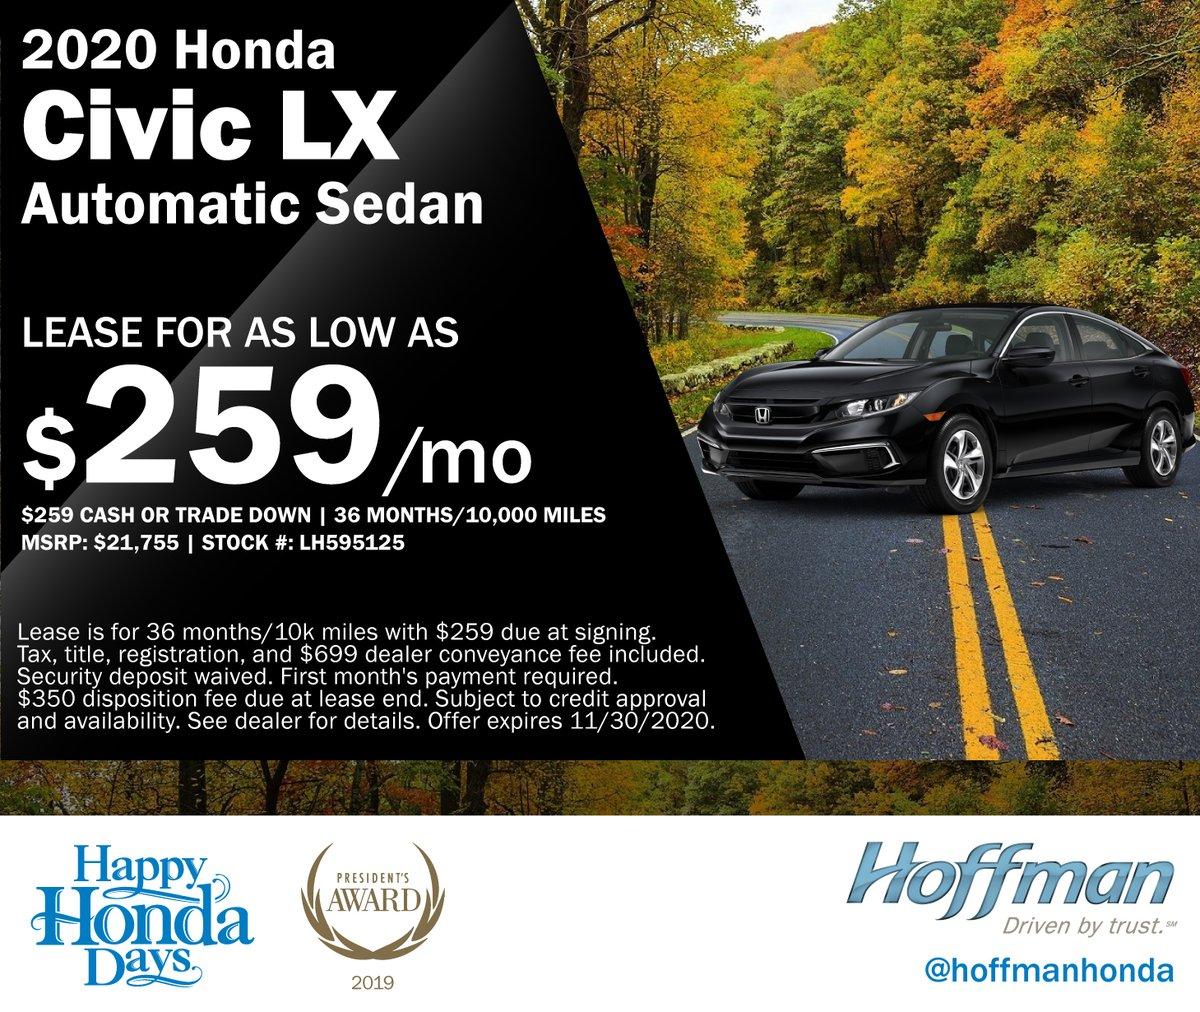 Hoffman Honda On Twitter Check Out This Lease On A 2020 Honda Civic In Stock And Ready To Be Delivered To Your Home Or Office Check Out Our Website For More Lease